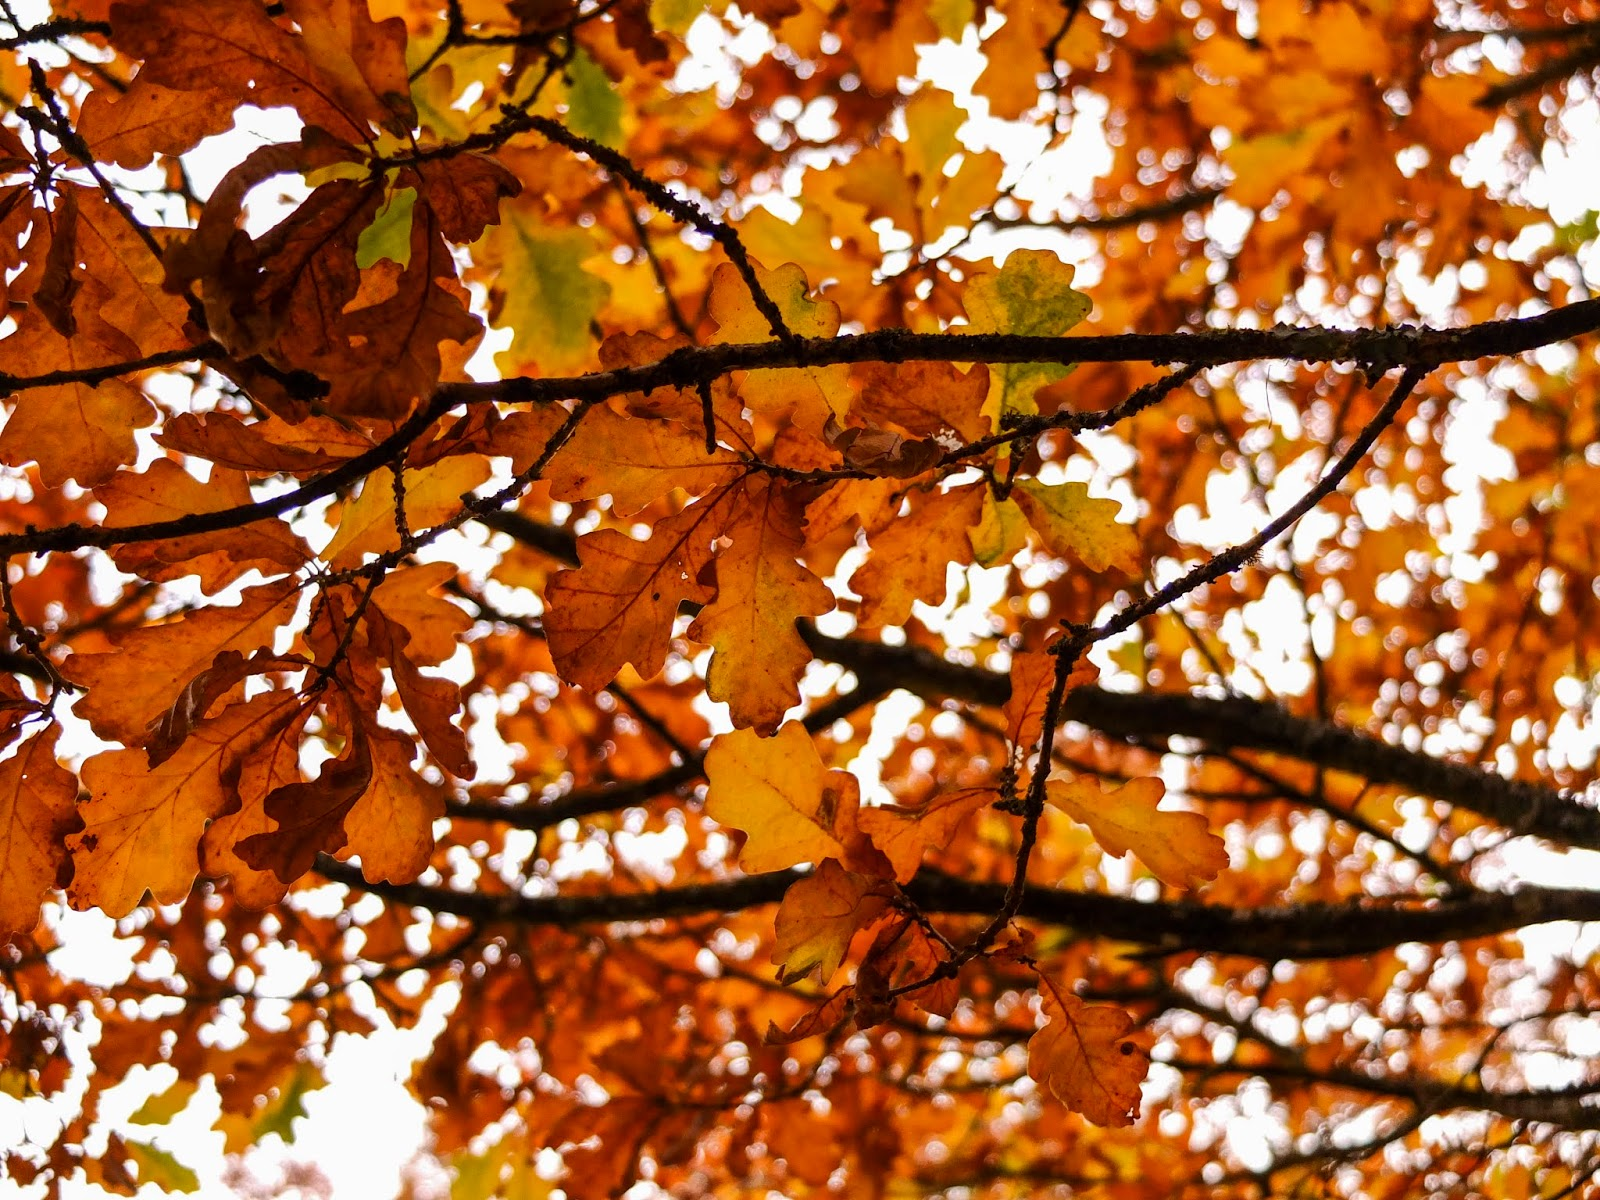 Looking up a canopy of brown and yellow autumn leaves on Oak tree branches outside Kanturk Castle.